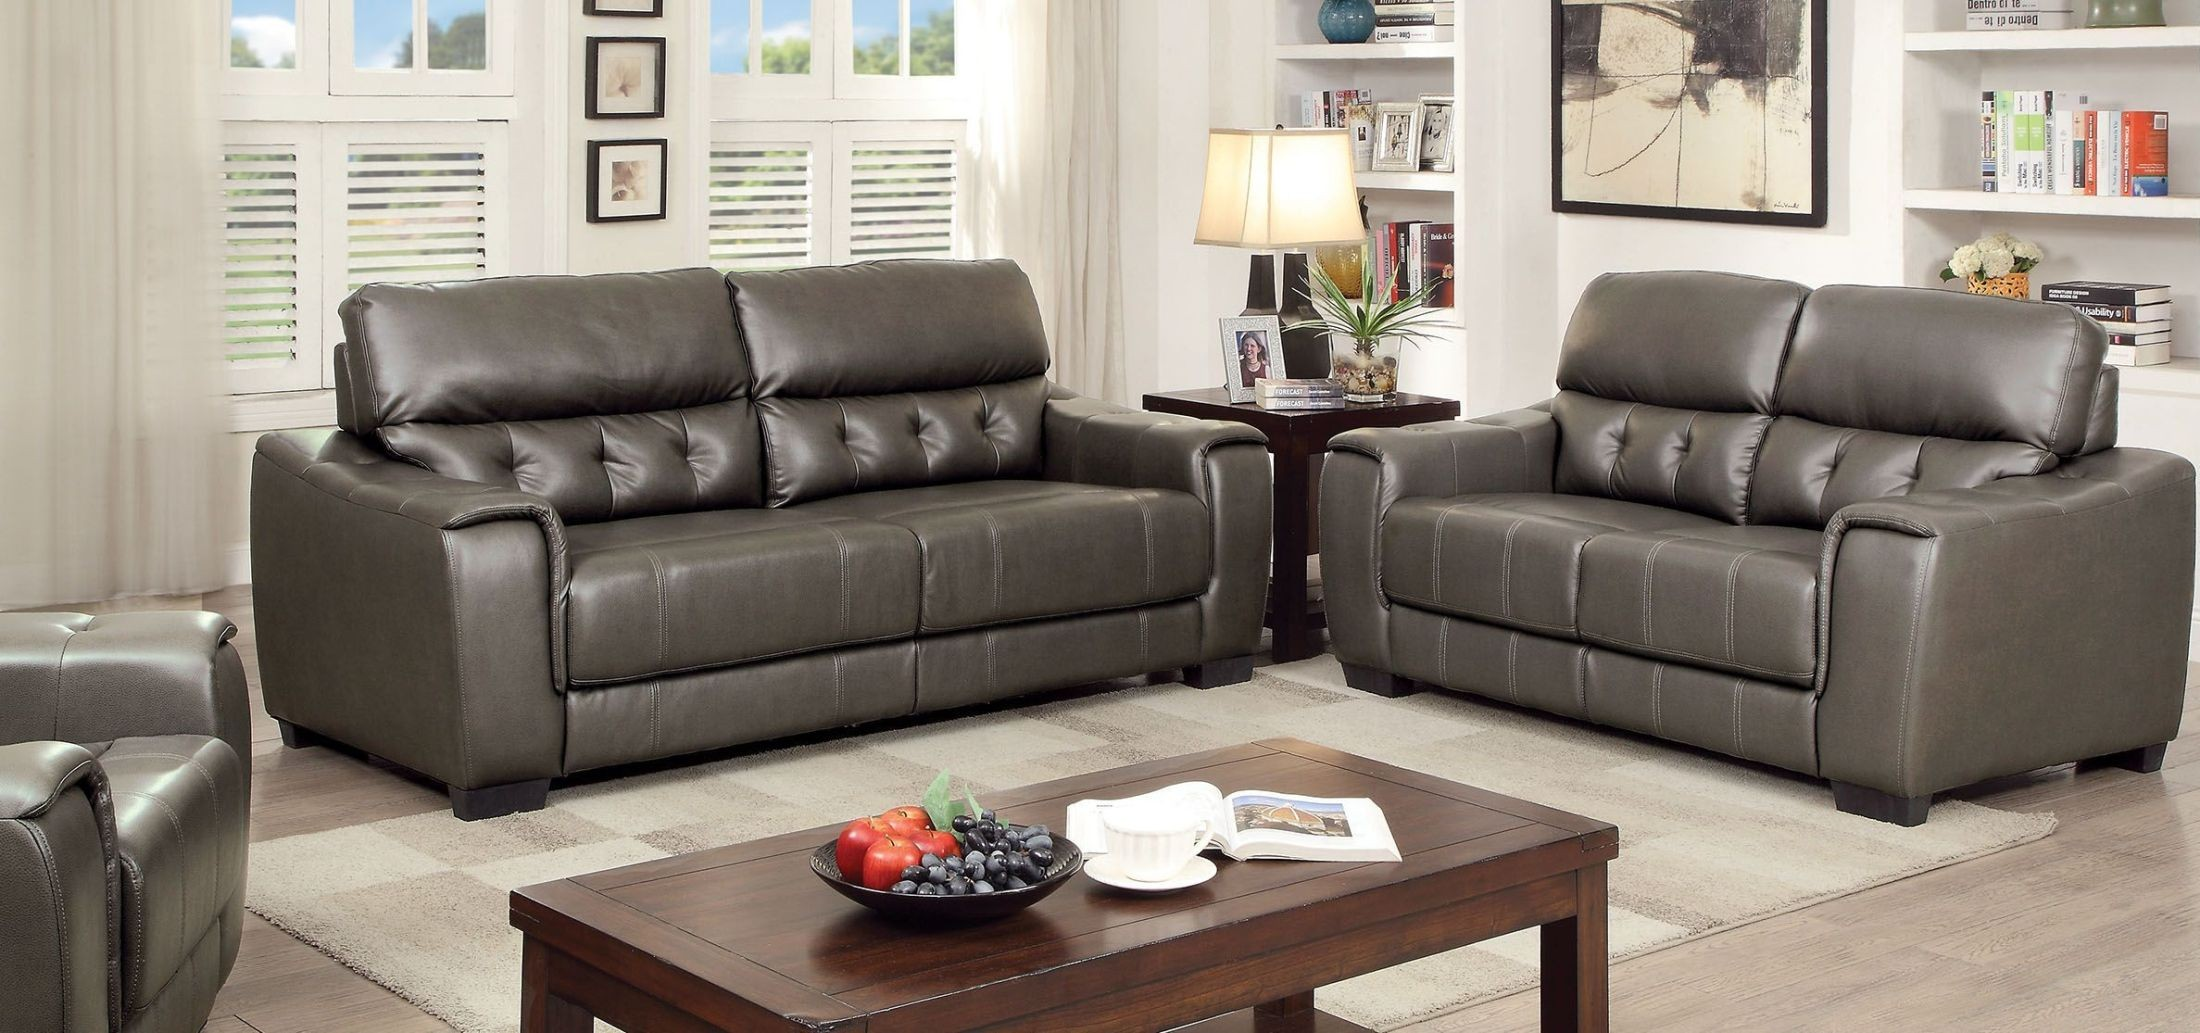 randa dark gray living room set cm6797 sf furniture of america